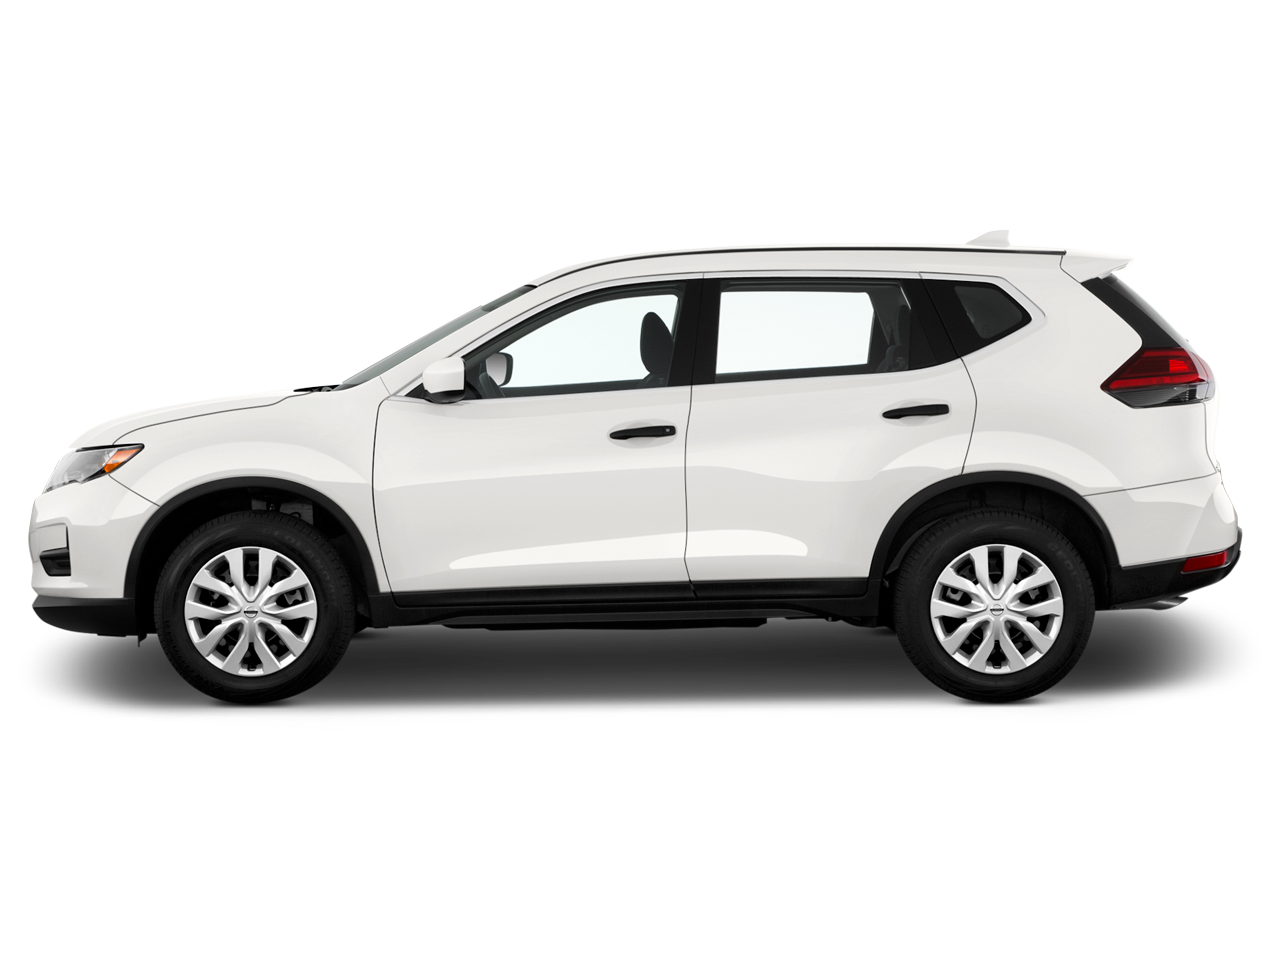 New rogue for sale world car nissan vanachro Images